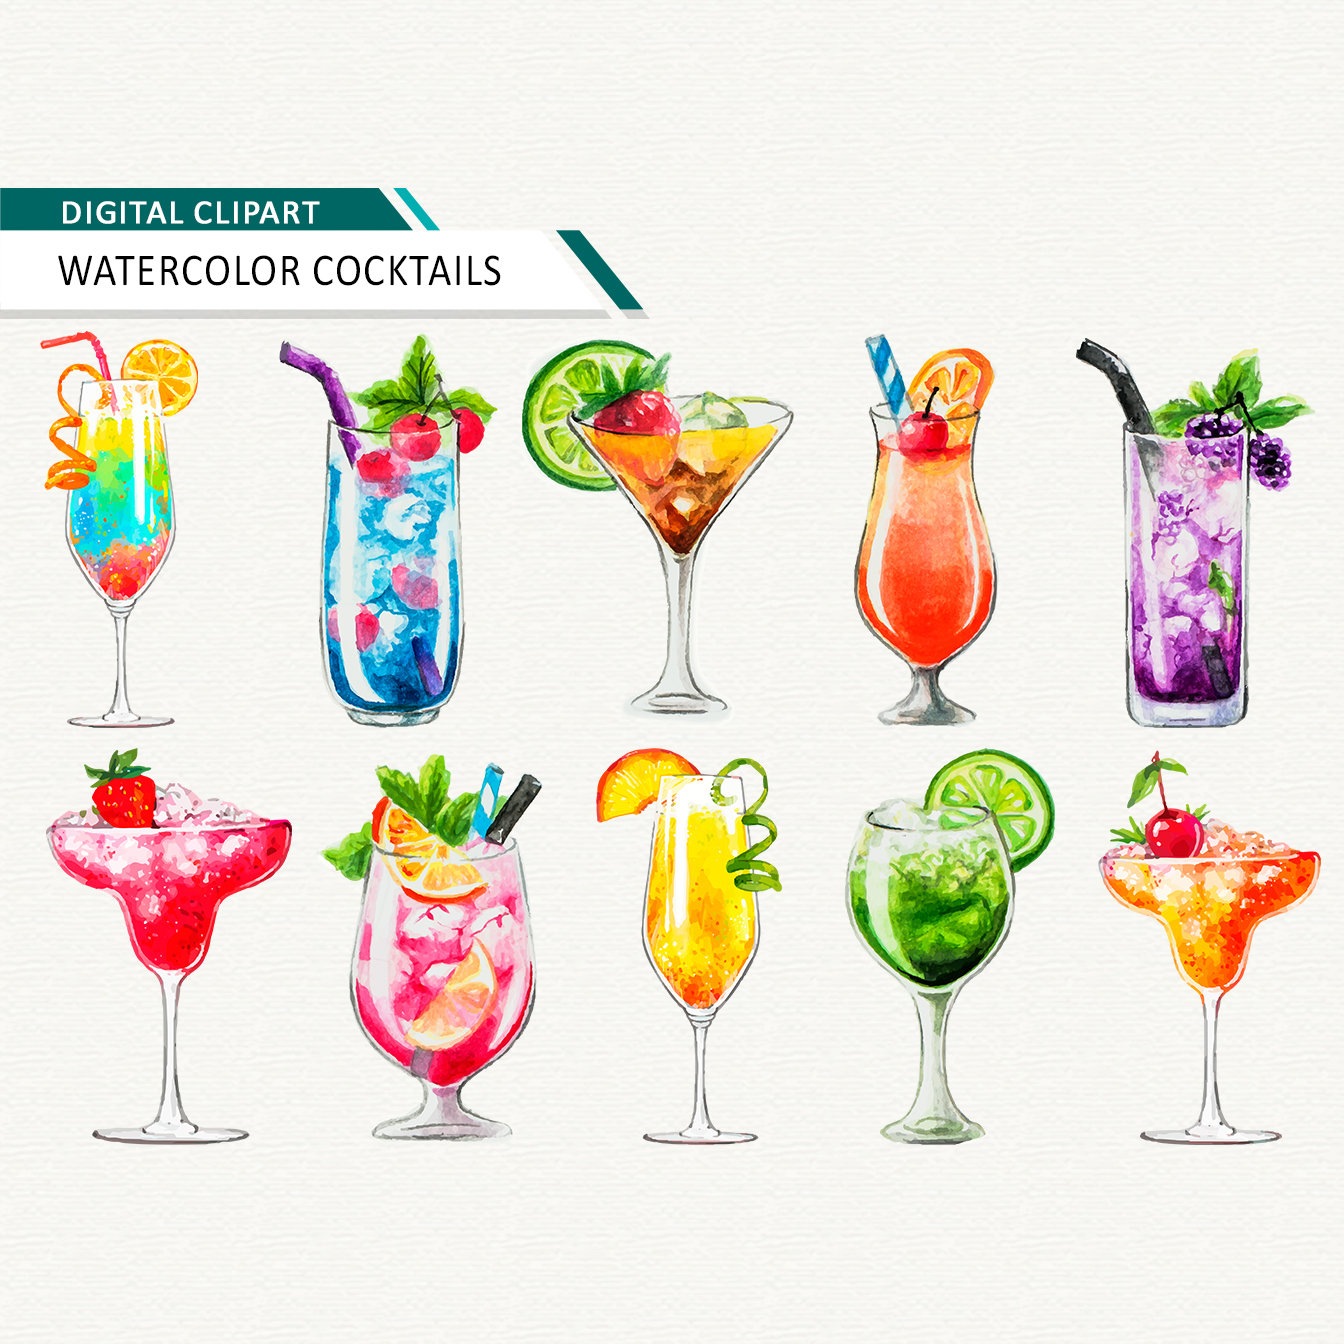 Watercolor cocktail clipart alcoholic drinks clipart Summer Clipart Hello  Summer Drink clipart Tropical drink summer drink download.